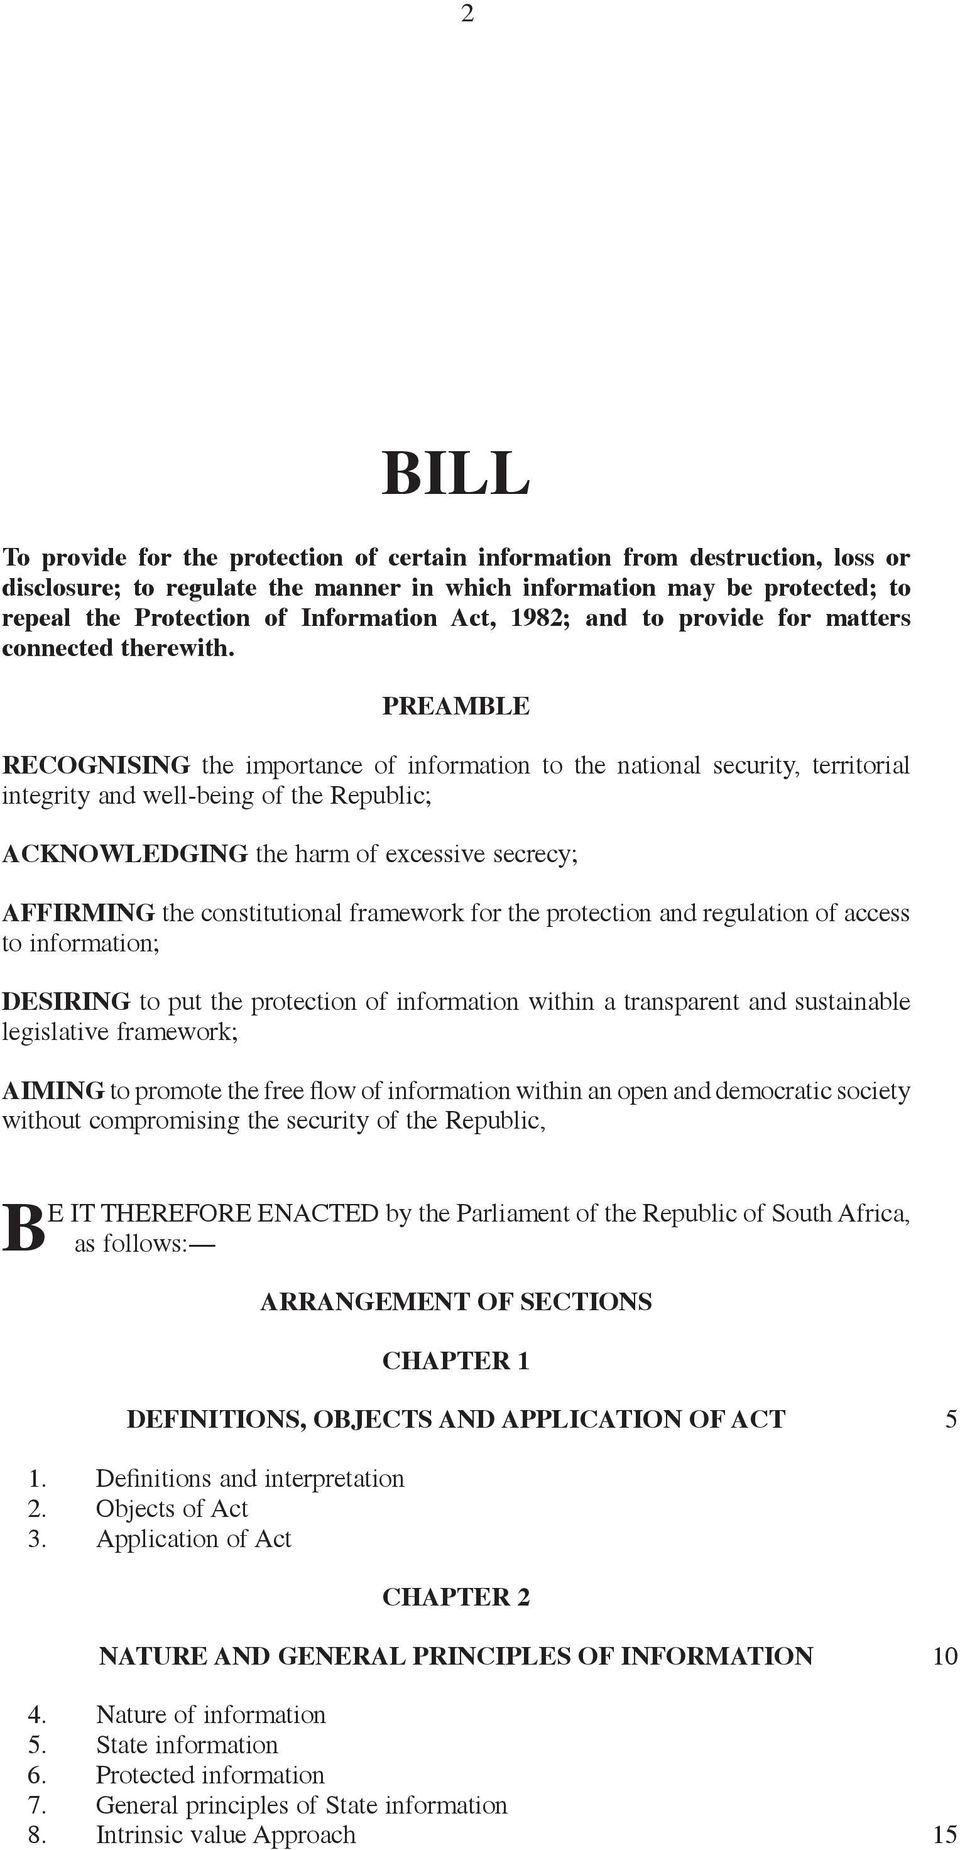 PREAMBLE RECOGNISING the importance of information to the national security, territorial integrity and well-being of the Republic; ACKNOWLEDGING the harm of excessive secrecy; AFFIRMING the